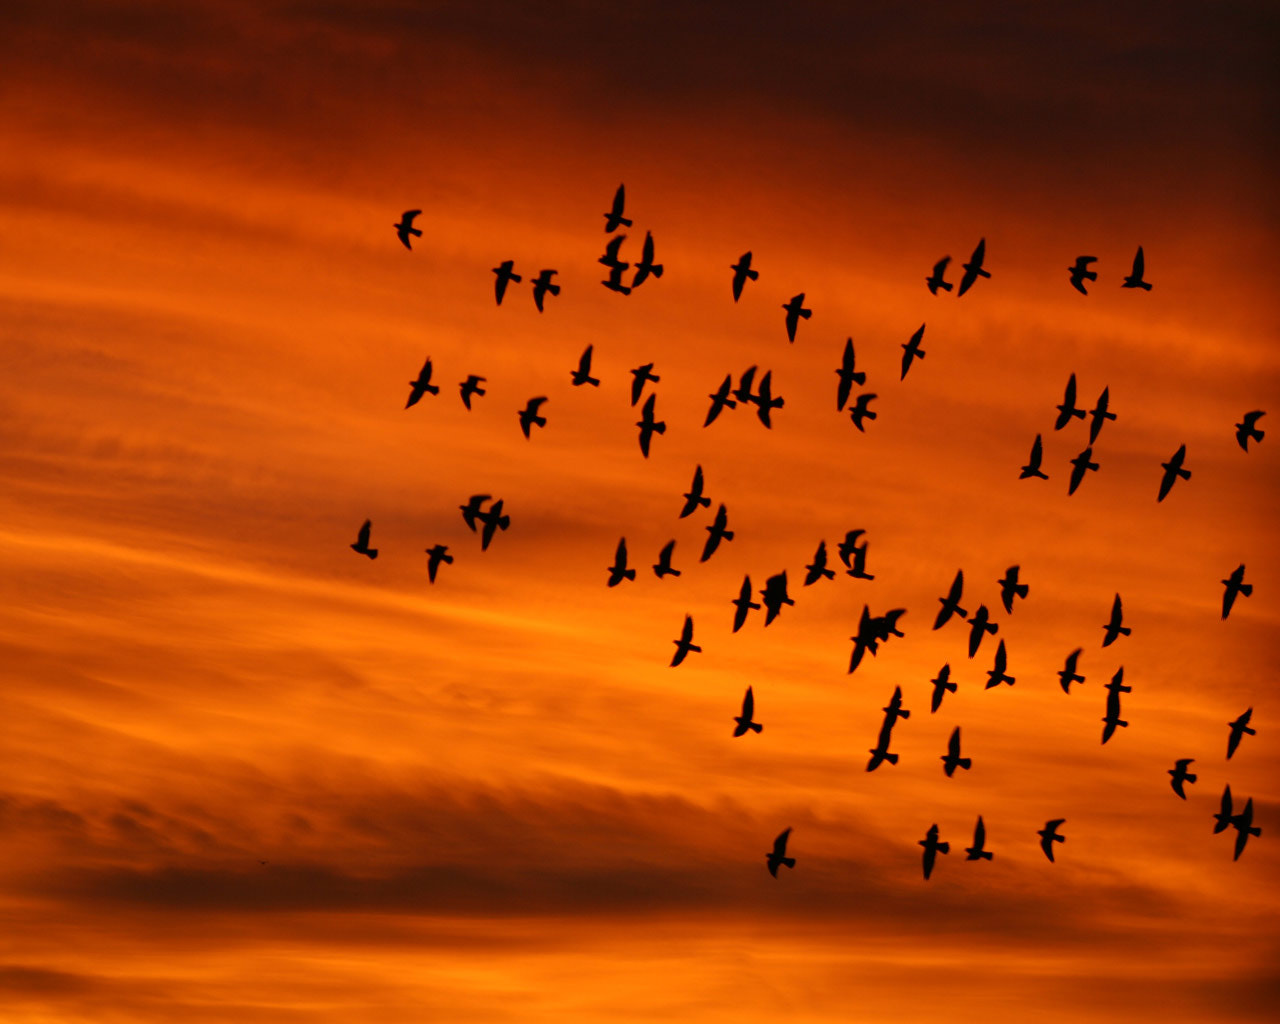 Photograph Birds by Brenda Colossi on 500px